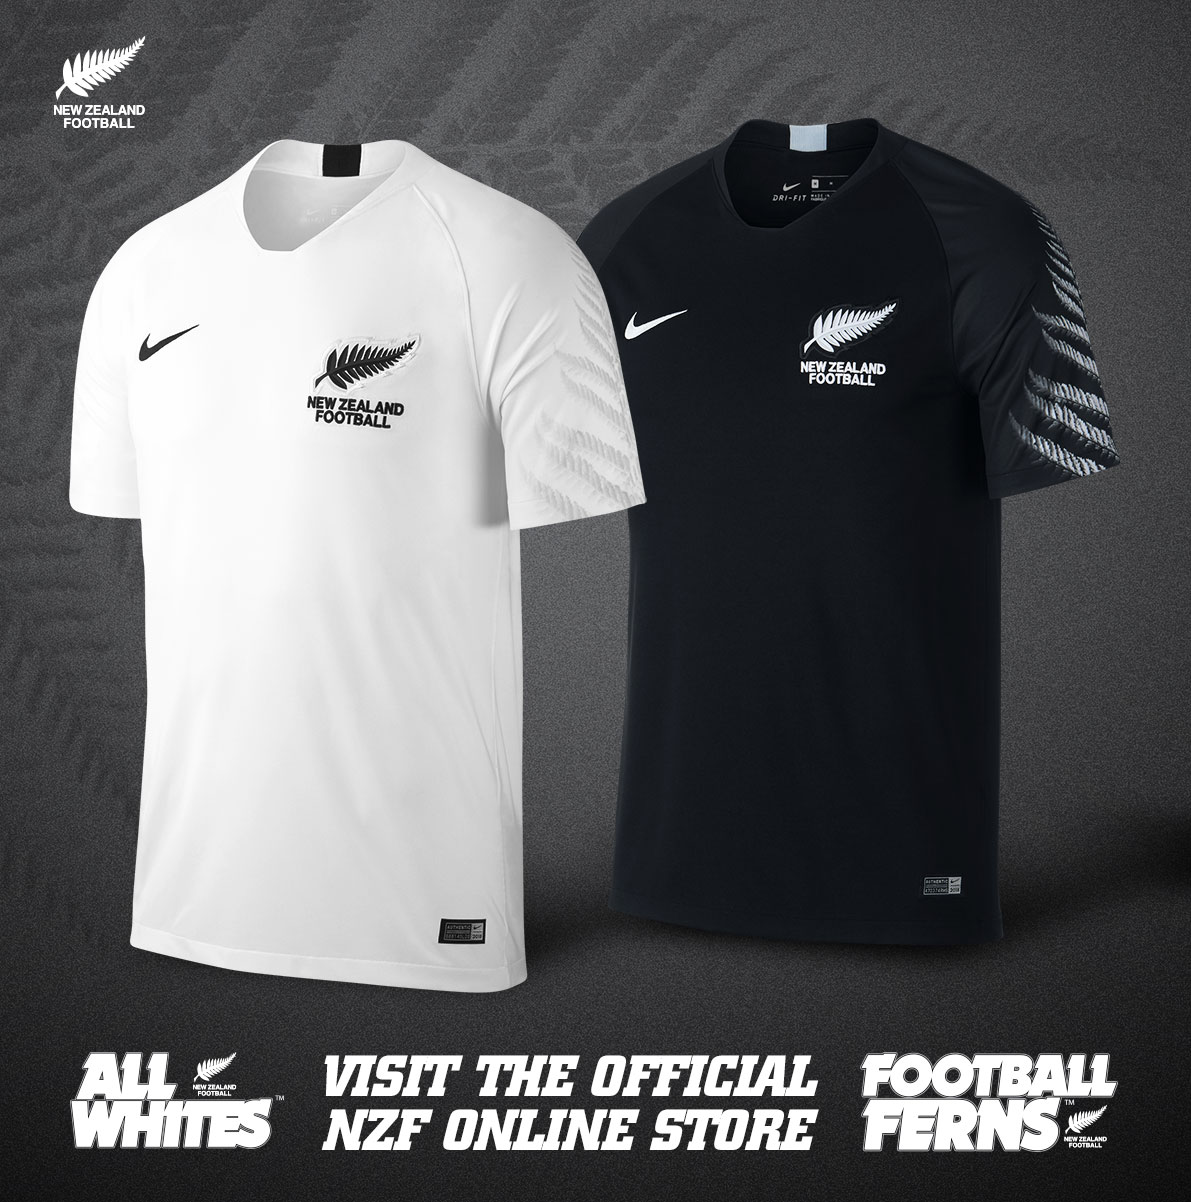 53babcd8028 NZ Football - All Whites